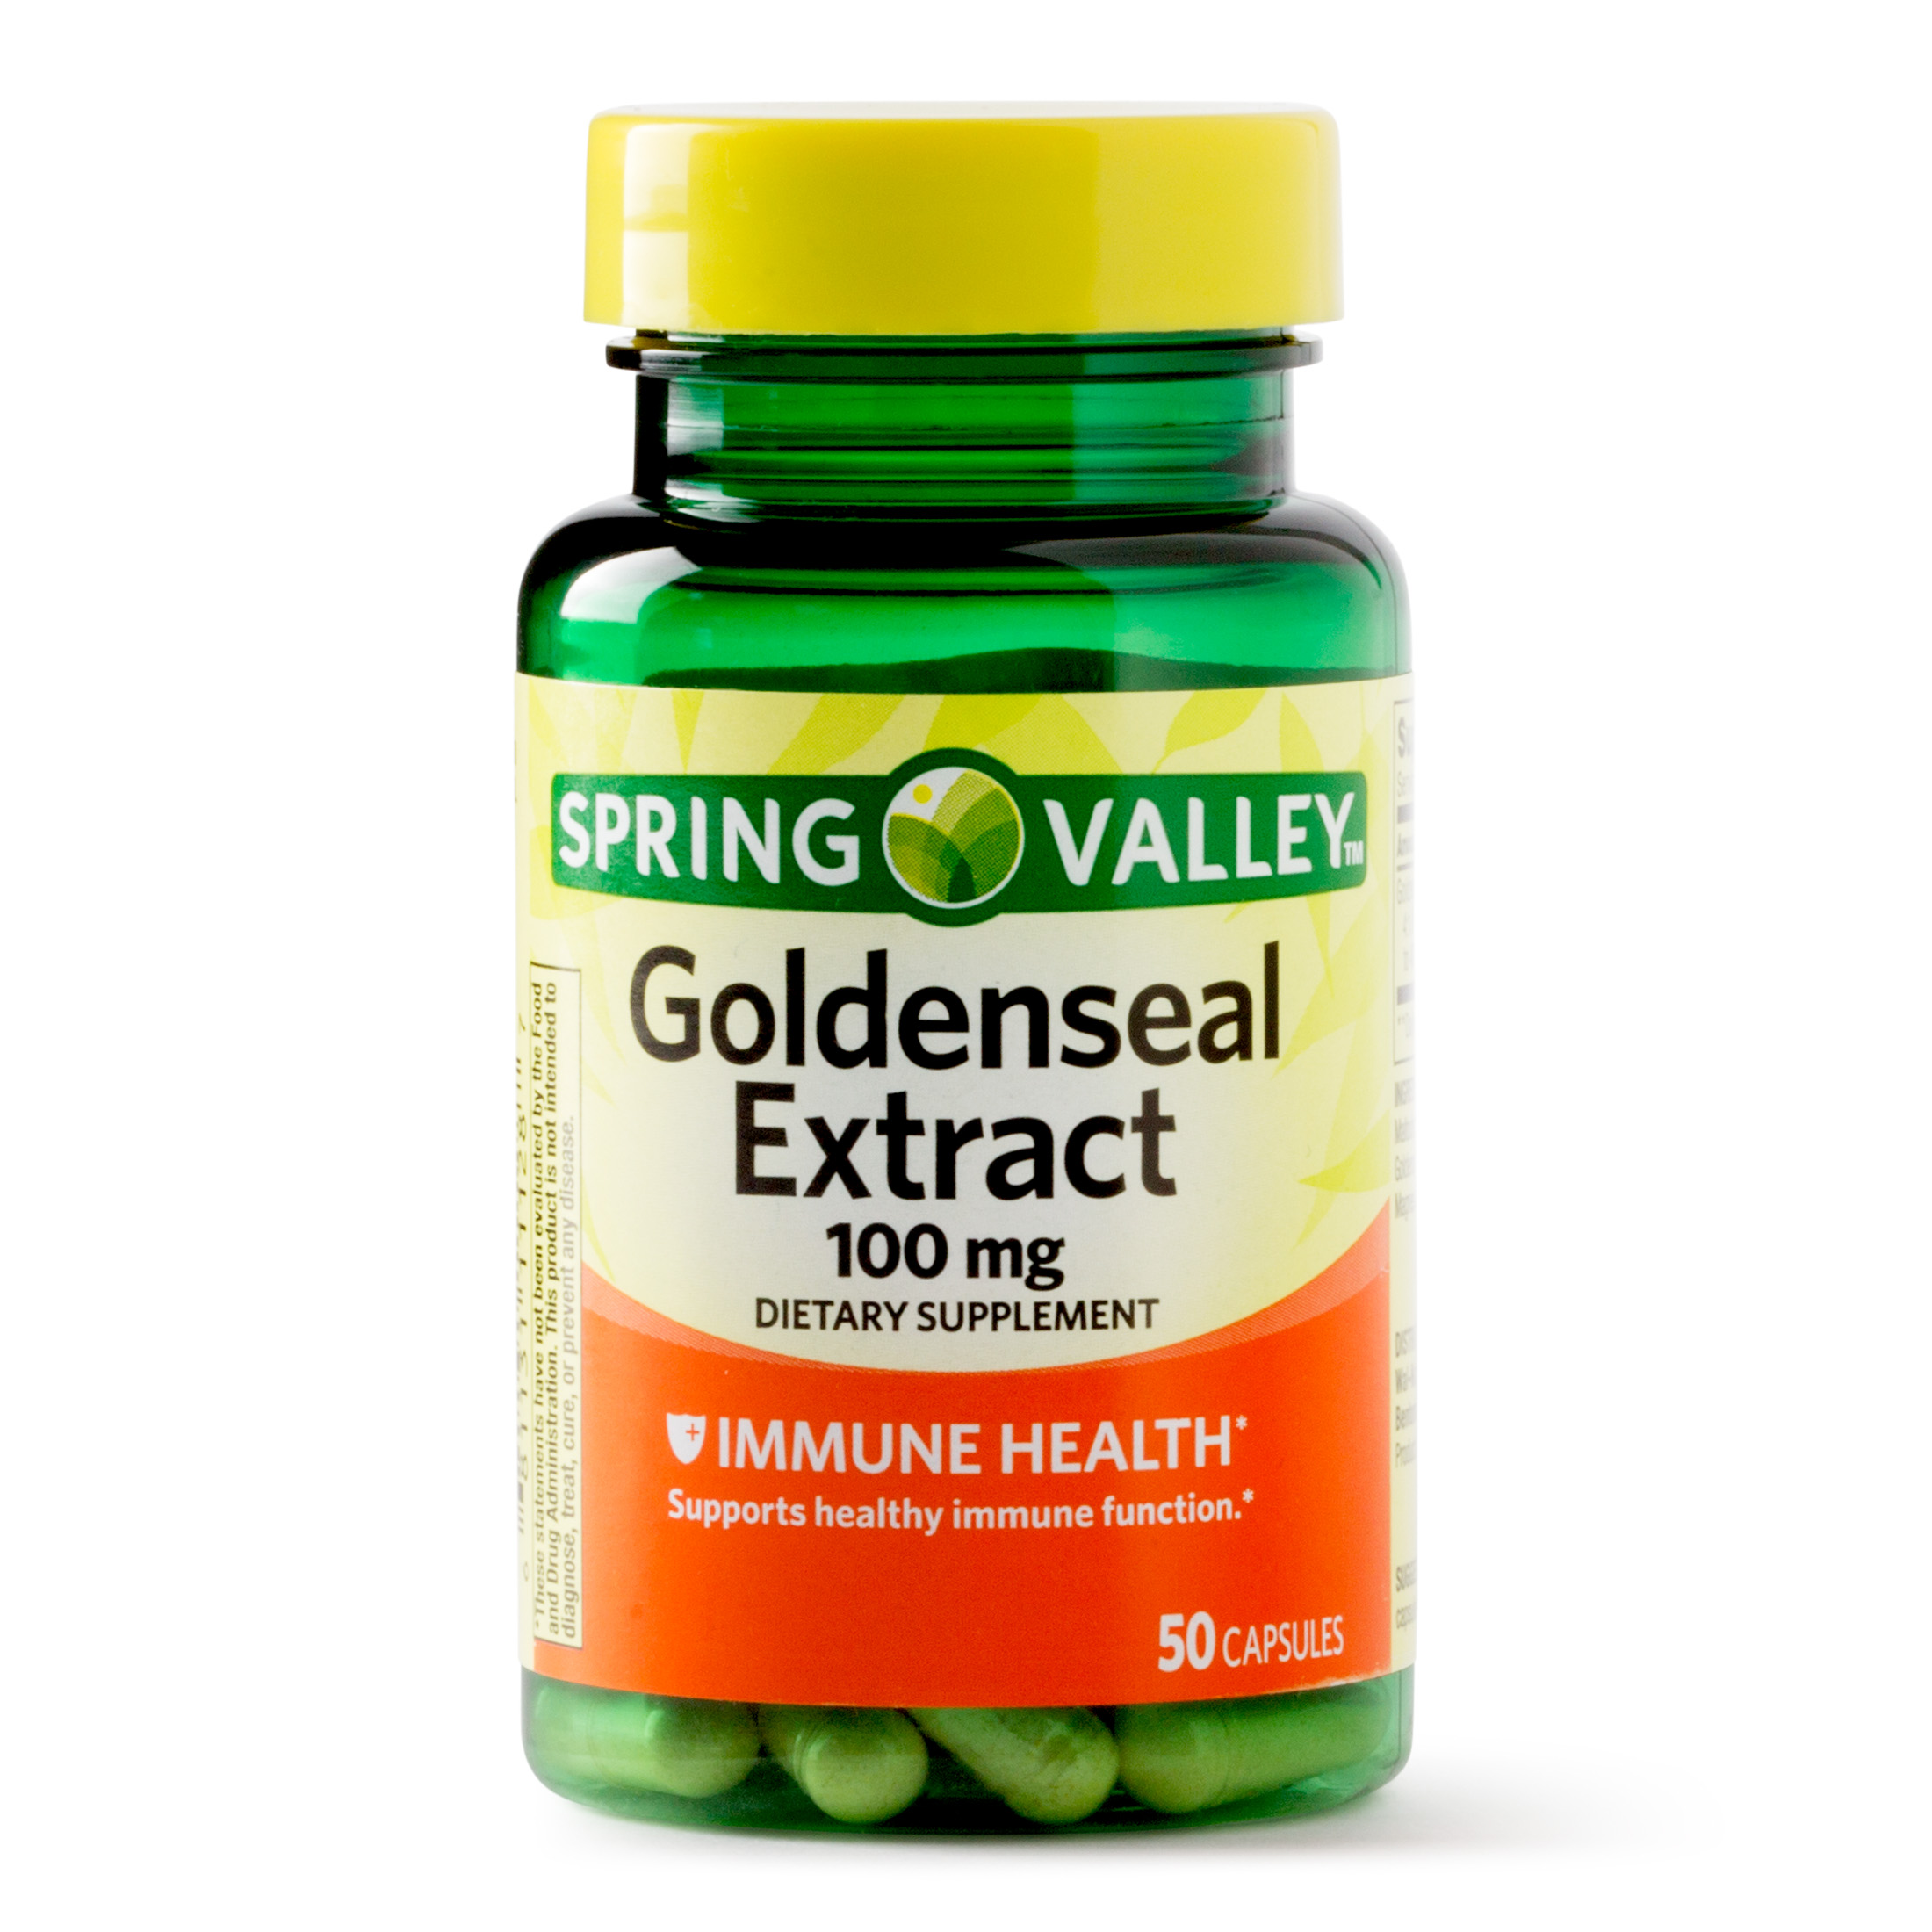 Spring Valley Goldenseal Extract Capsules, 100 mg, 50 Ct